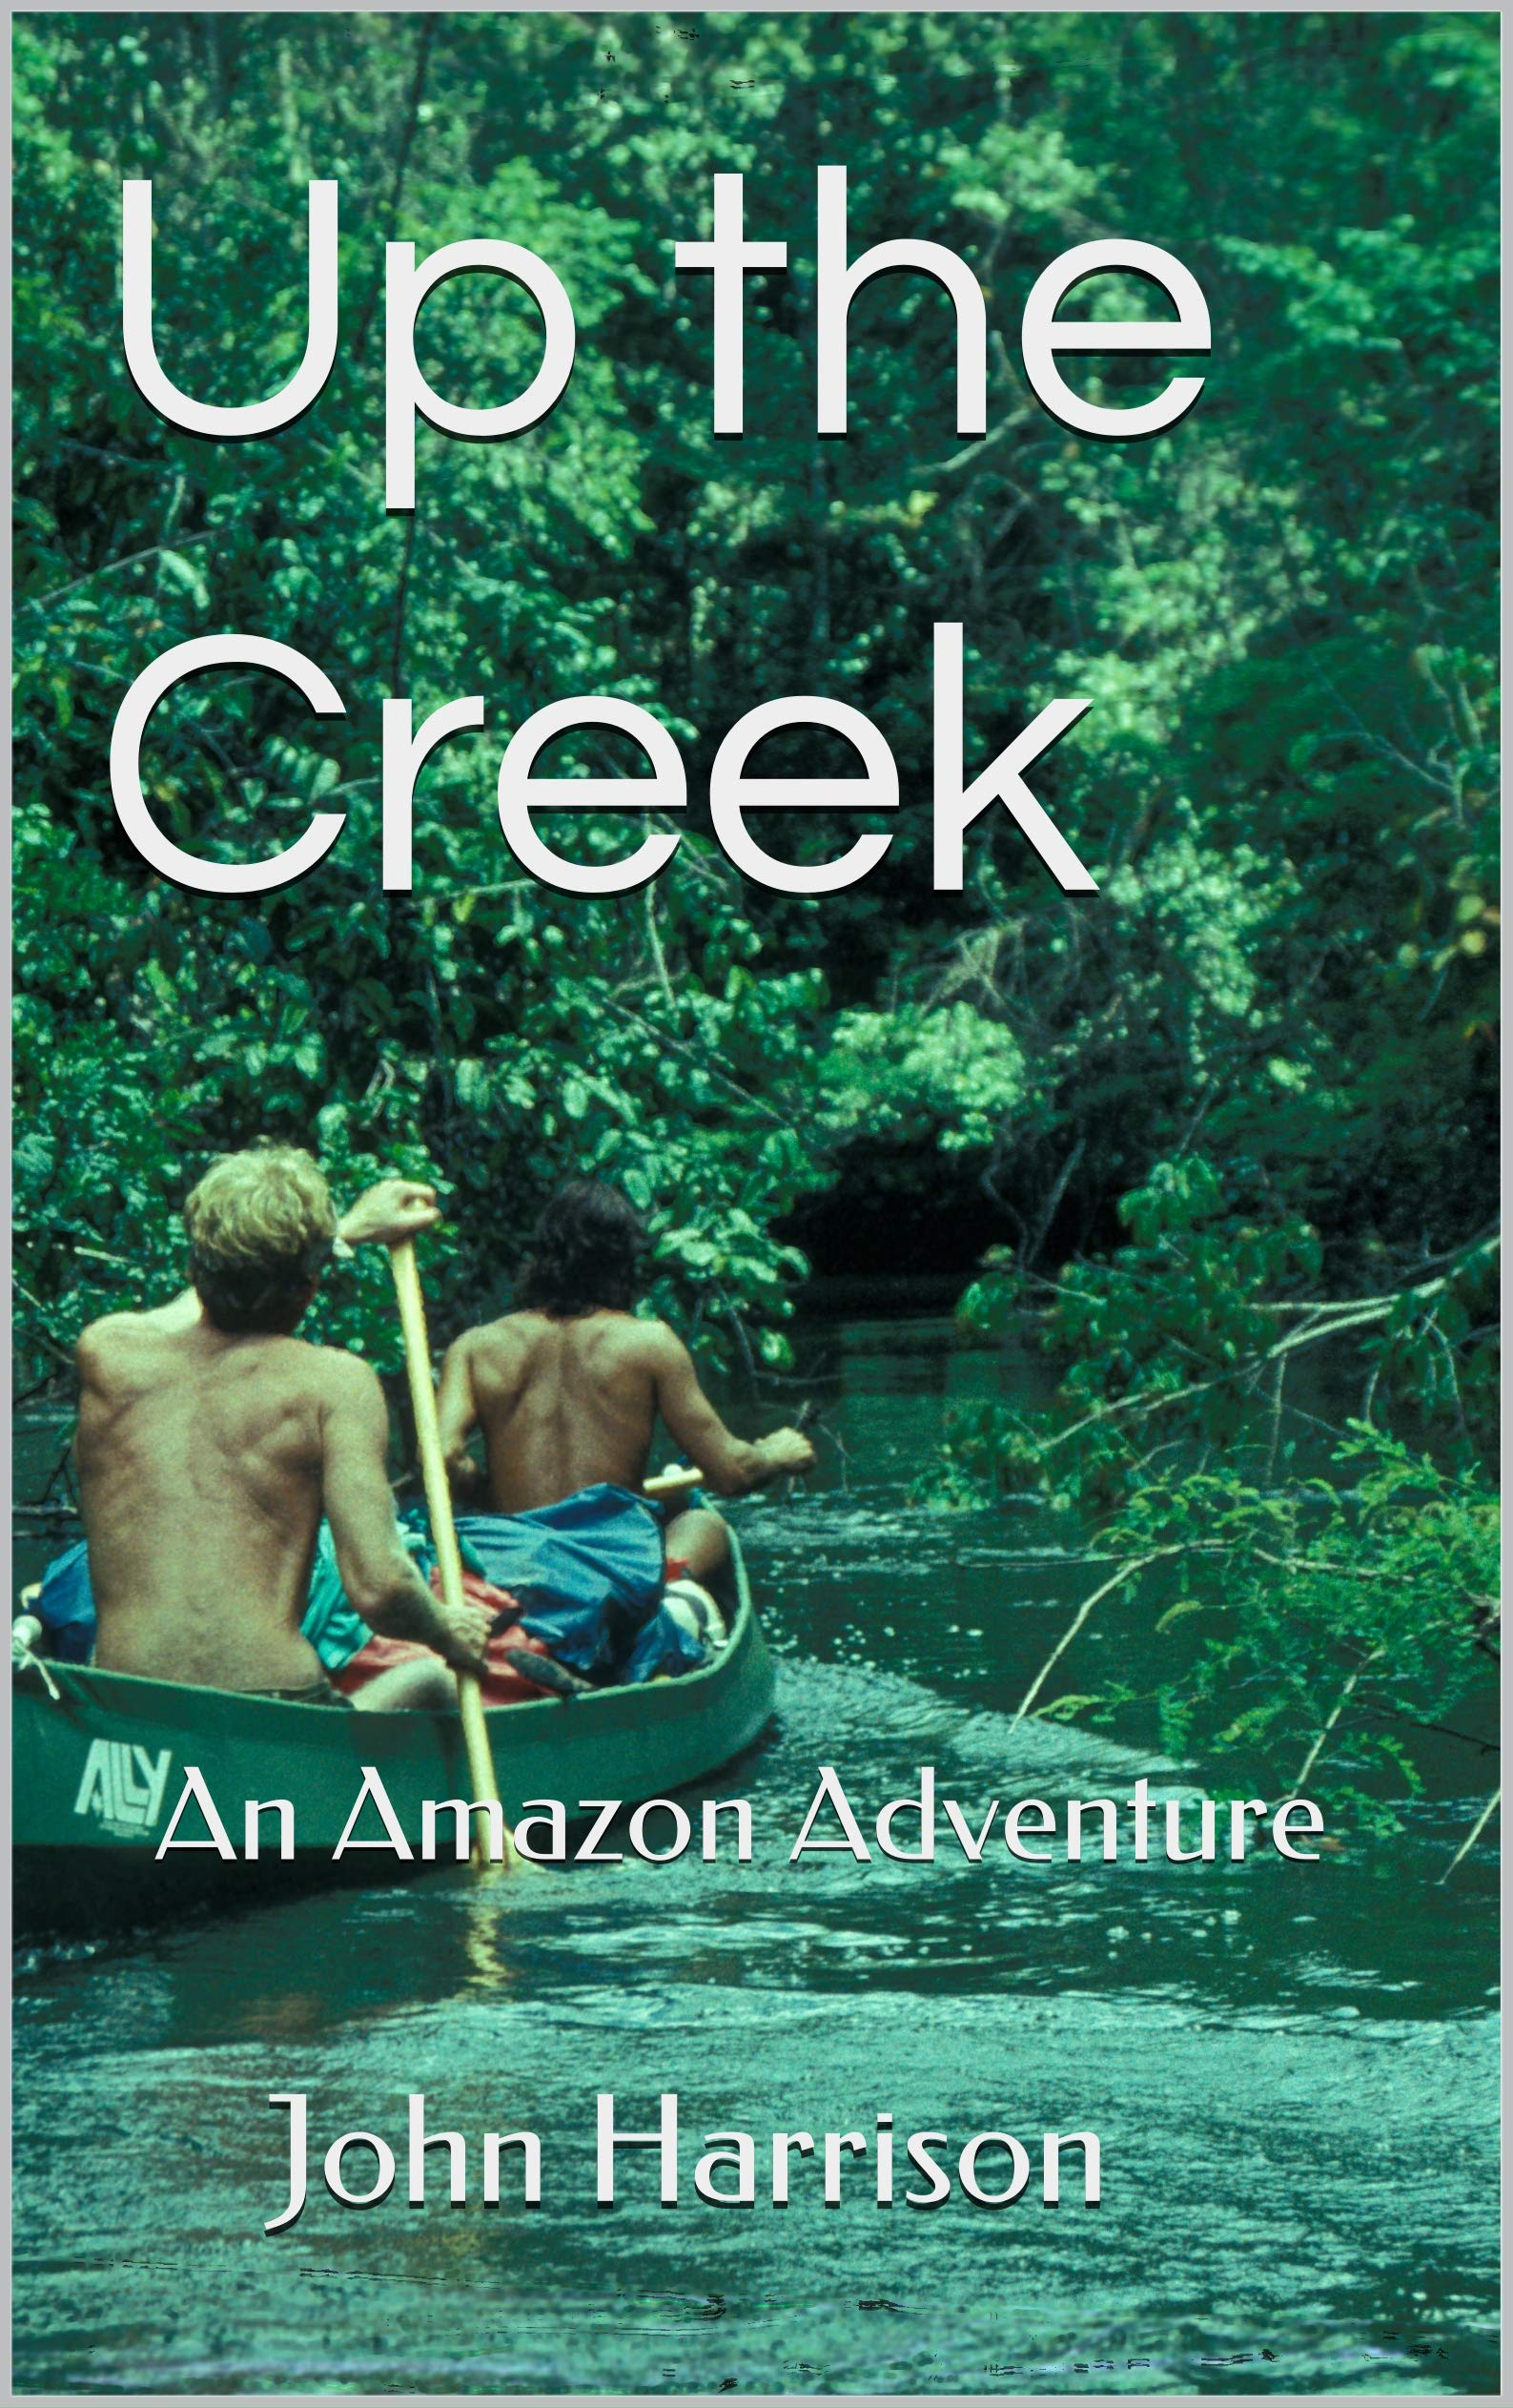 Image OfUp The Creek: An Amazon Adventure